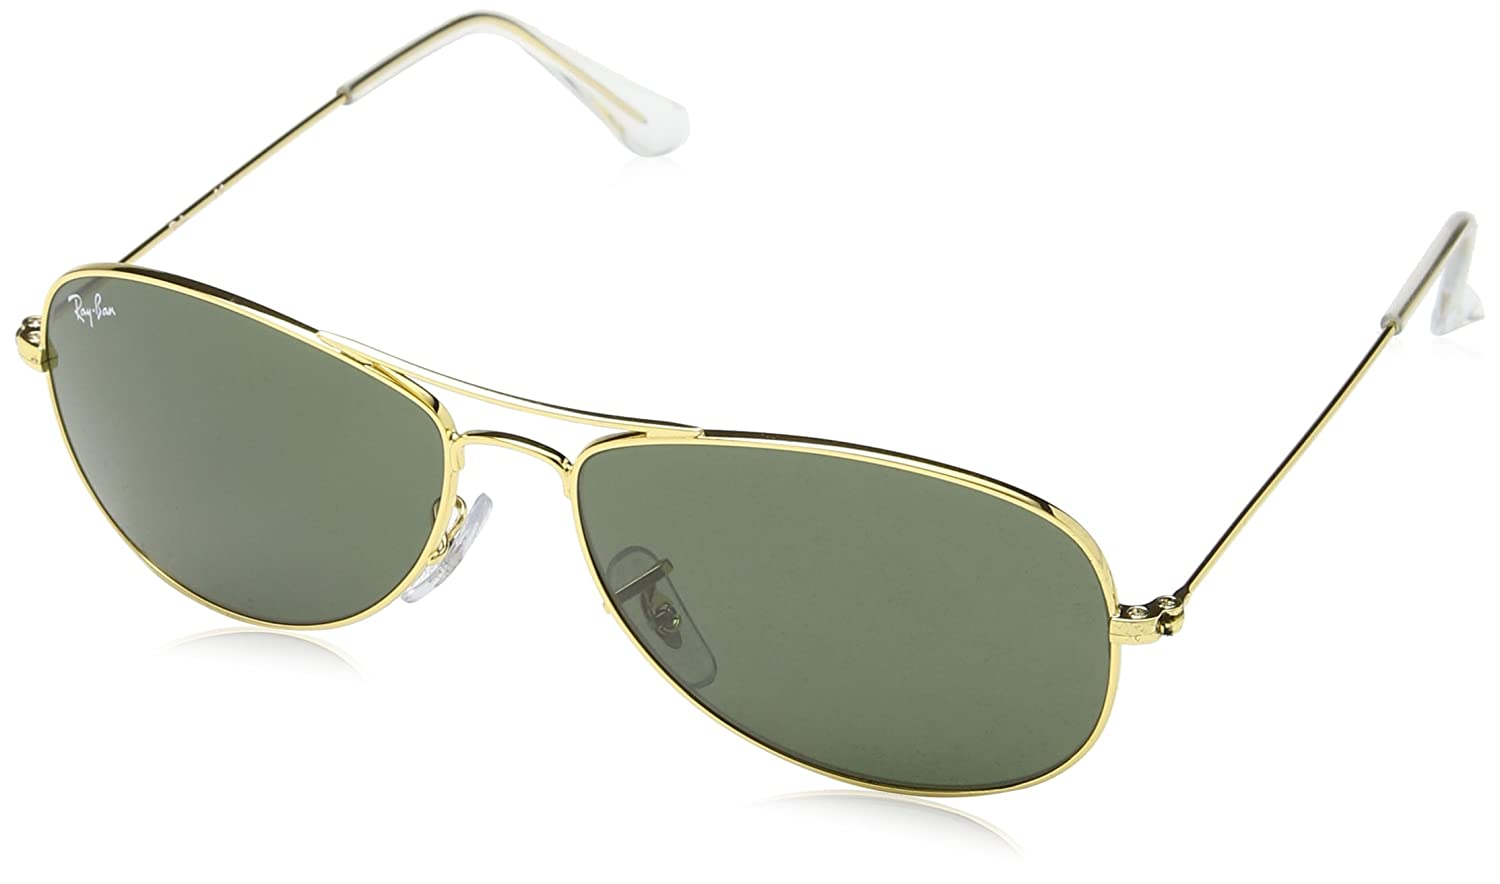 6f6238692b3 Amazon.com  Ray Ban Rb3362 Cockpit Gold Frame Green Lens Metal Sunglasses